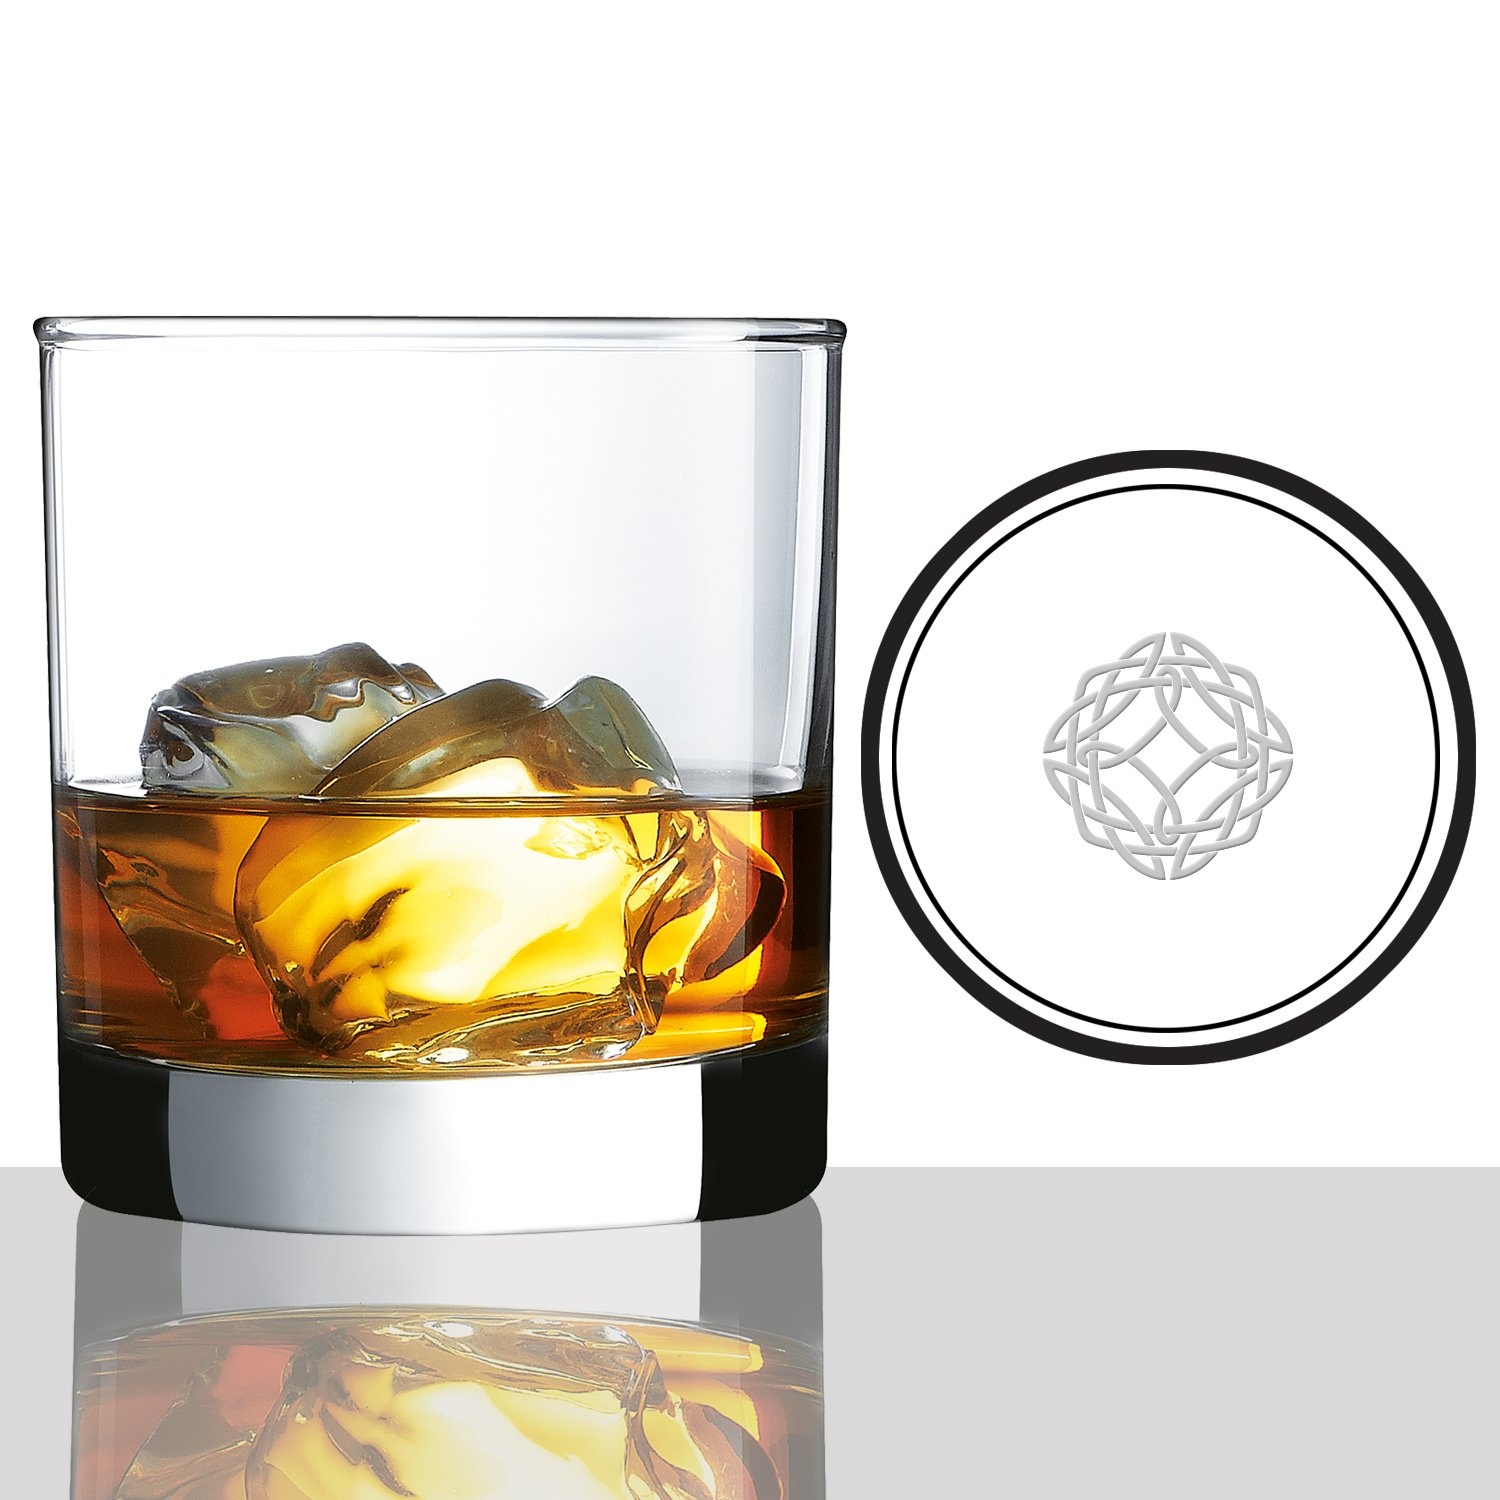 Amazon scotch whiskey glasses 10oz with etched scottish amazon scotch whiskey glasses 10oz with etched scottish symbol for strength set of 2 bar tools glasses buycottarizona